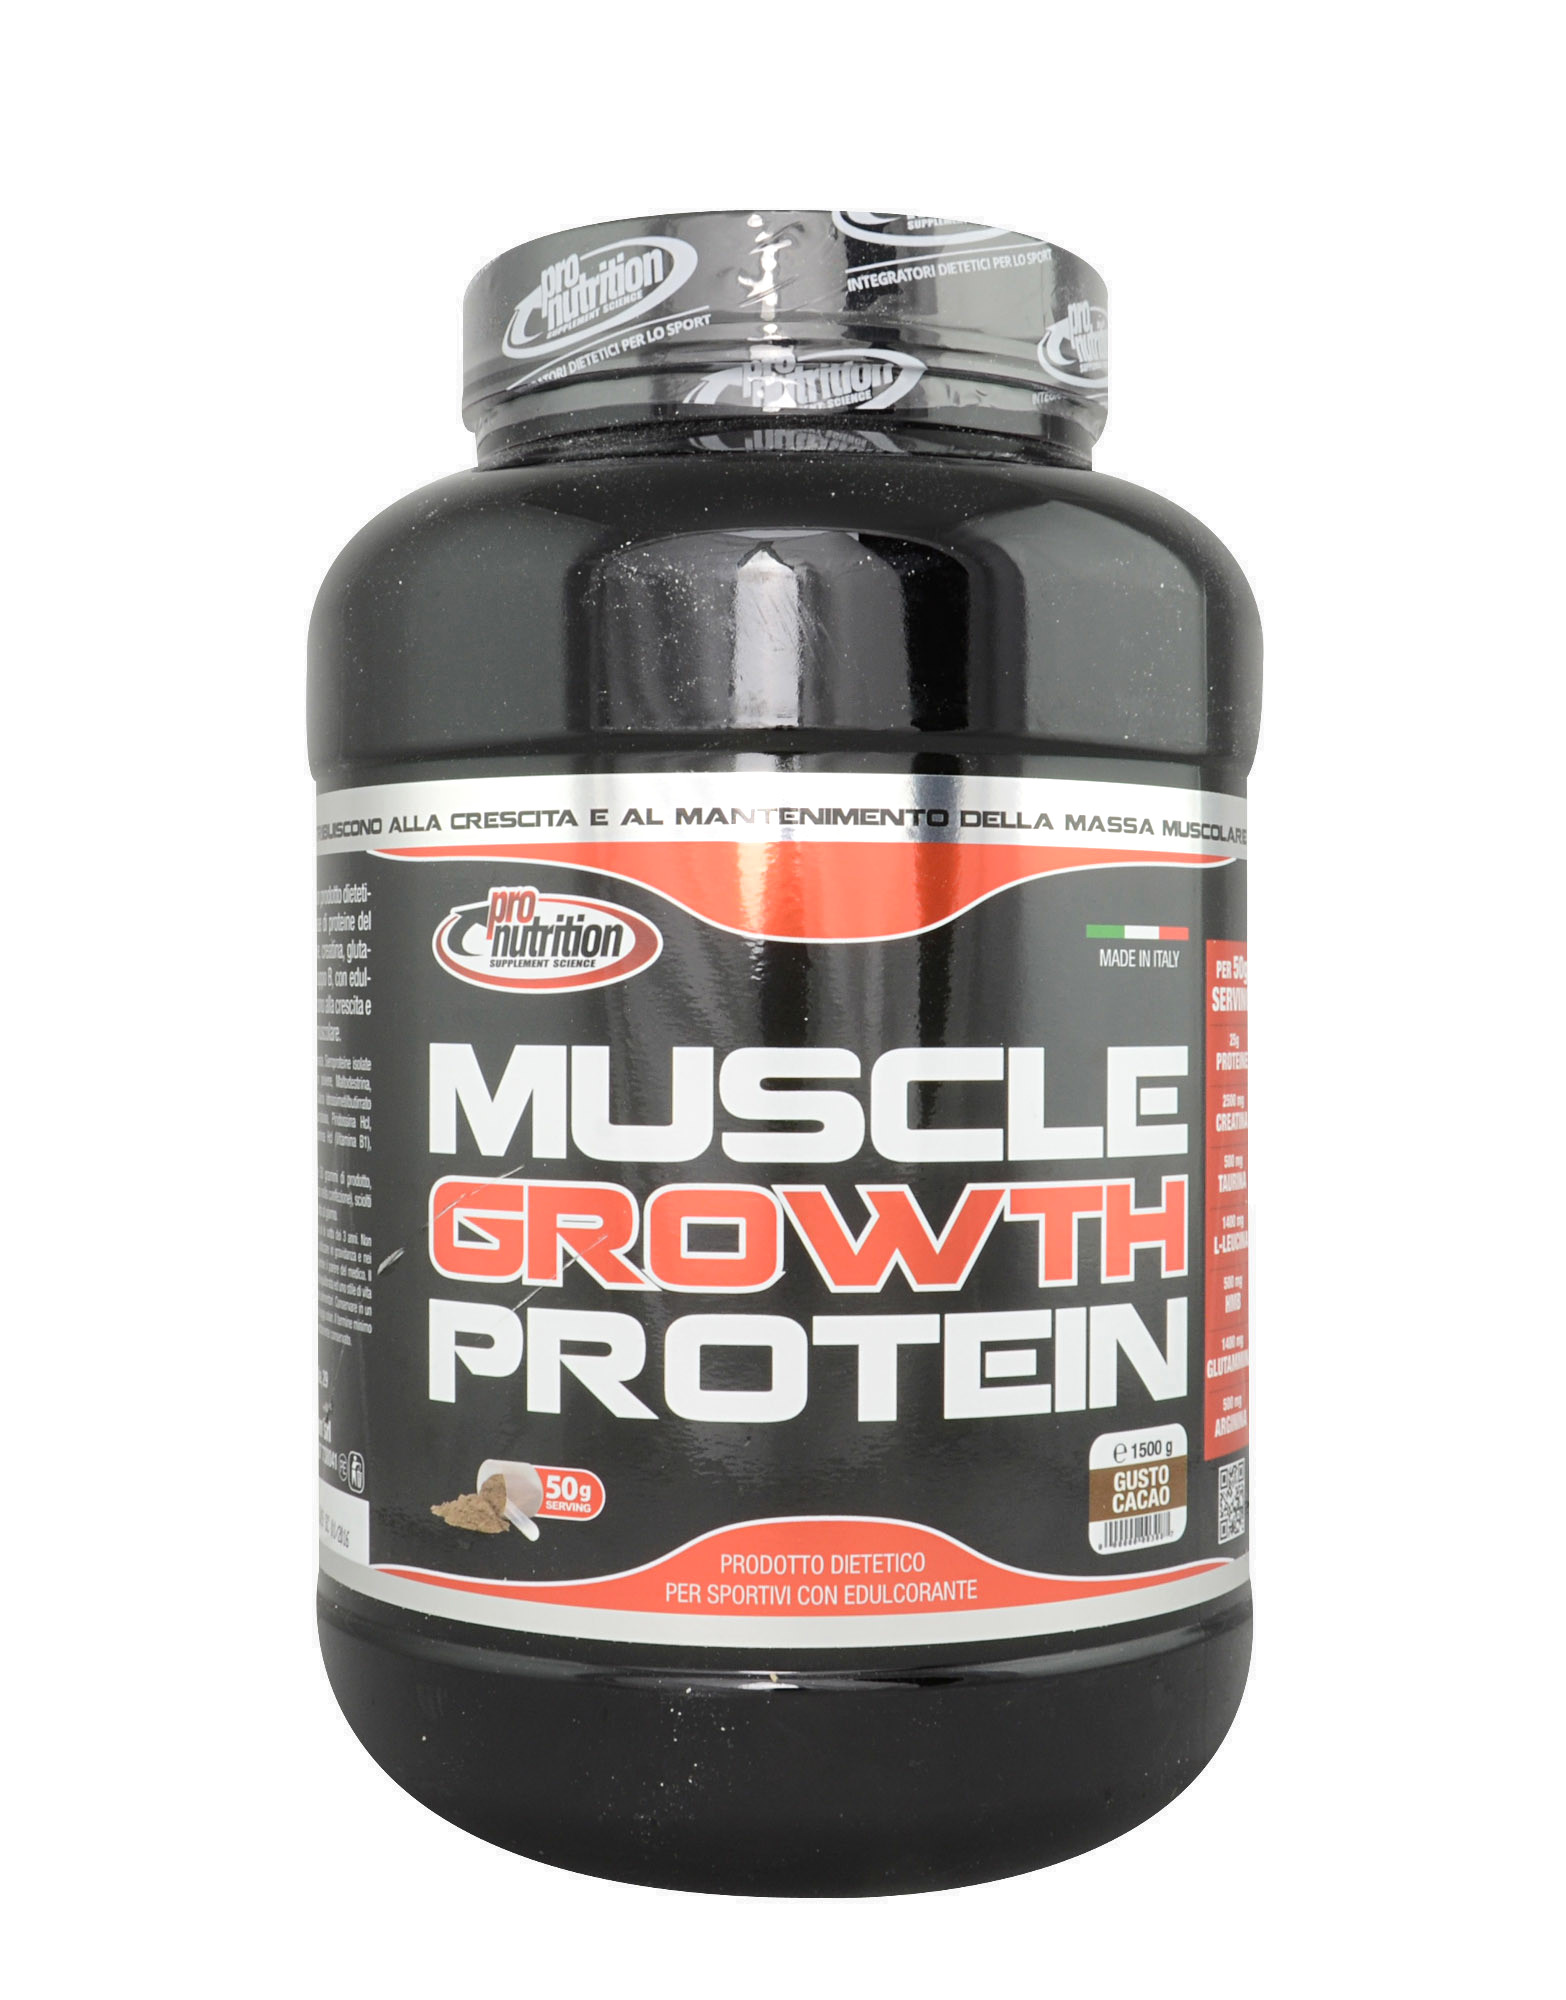 New supplements for muscle growth